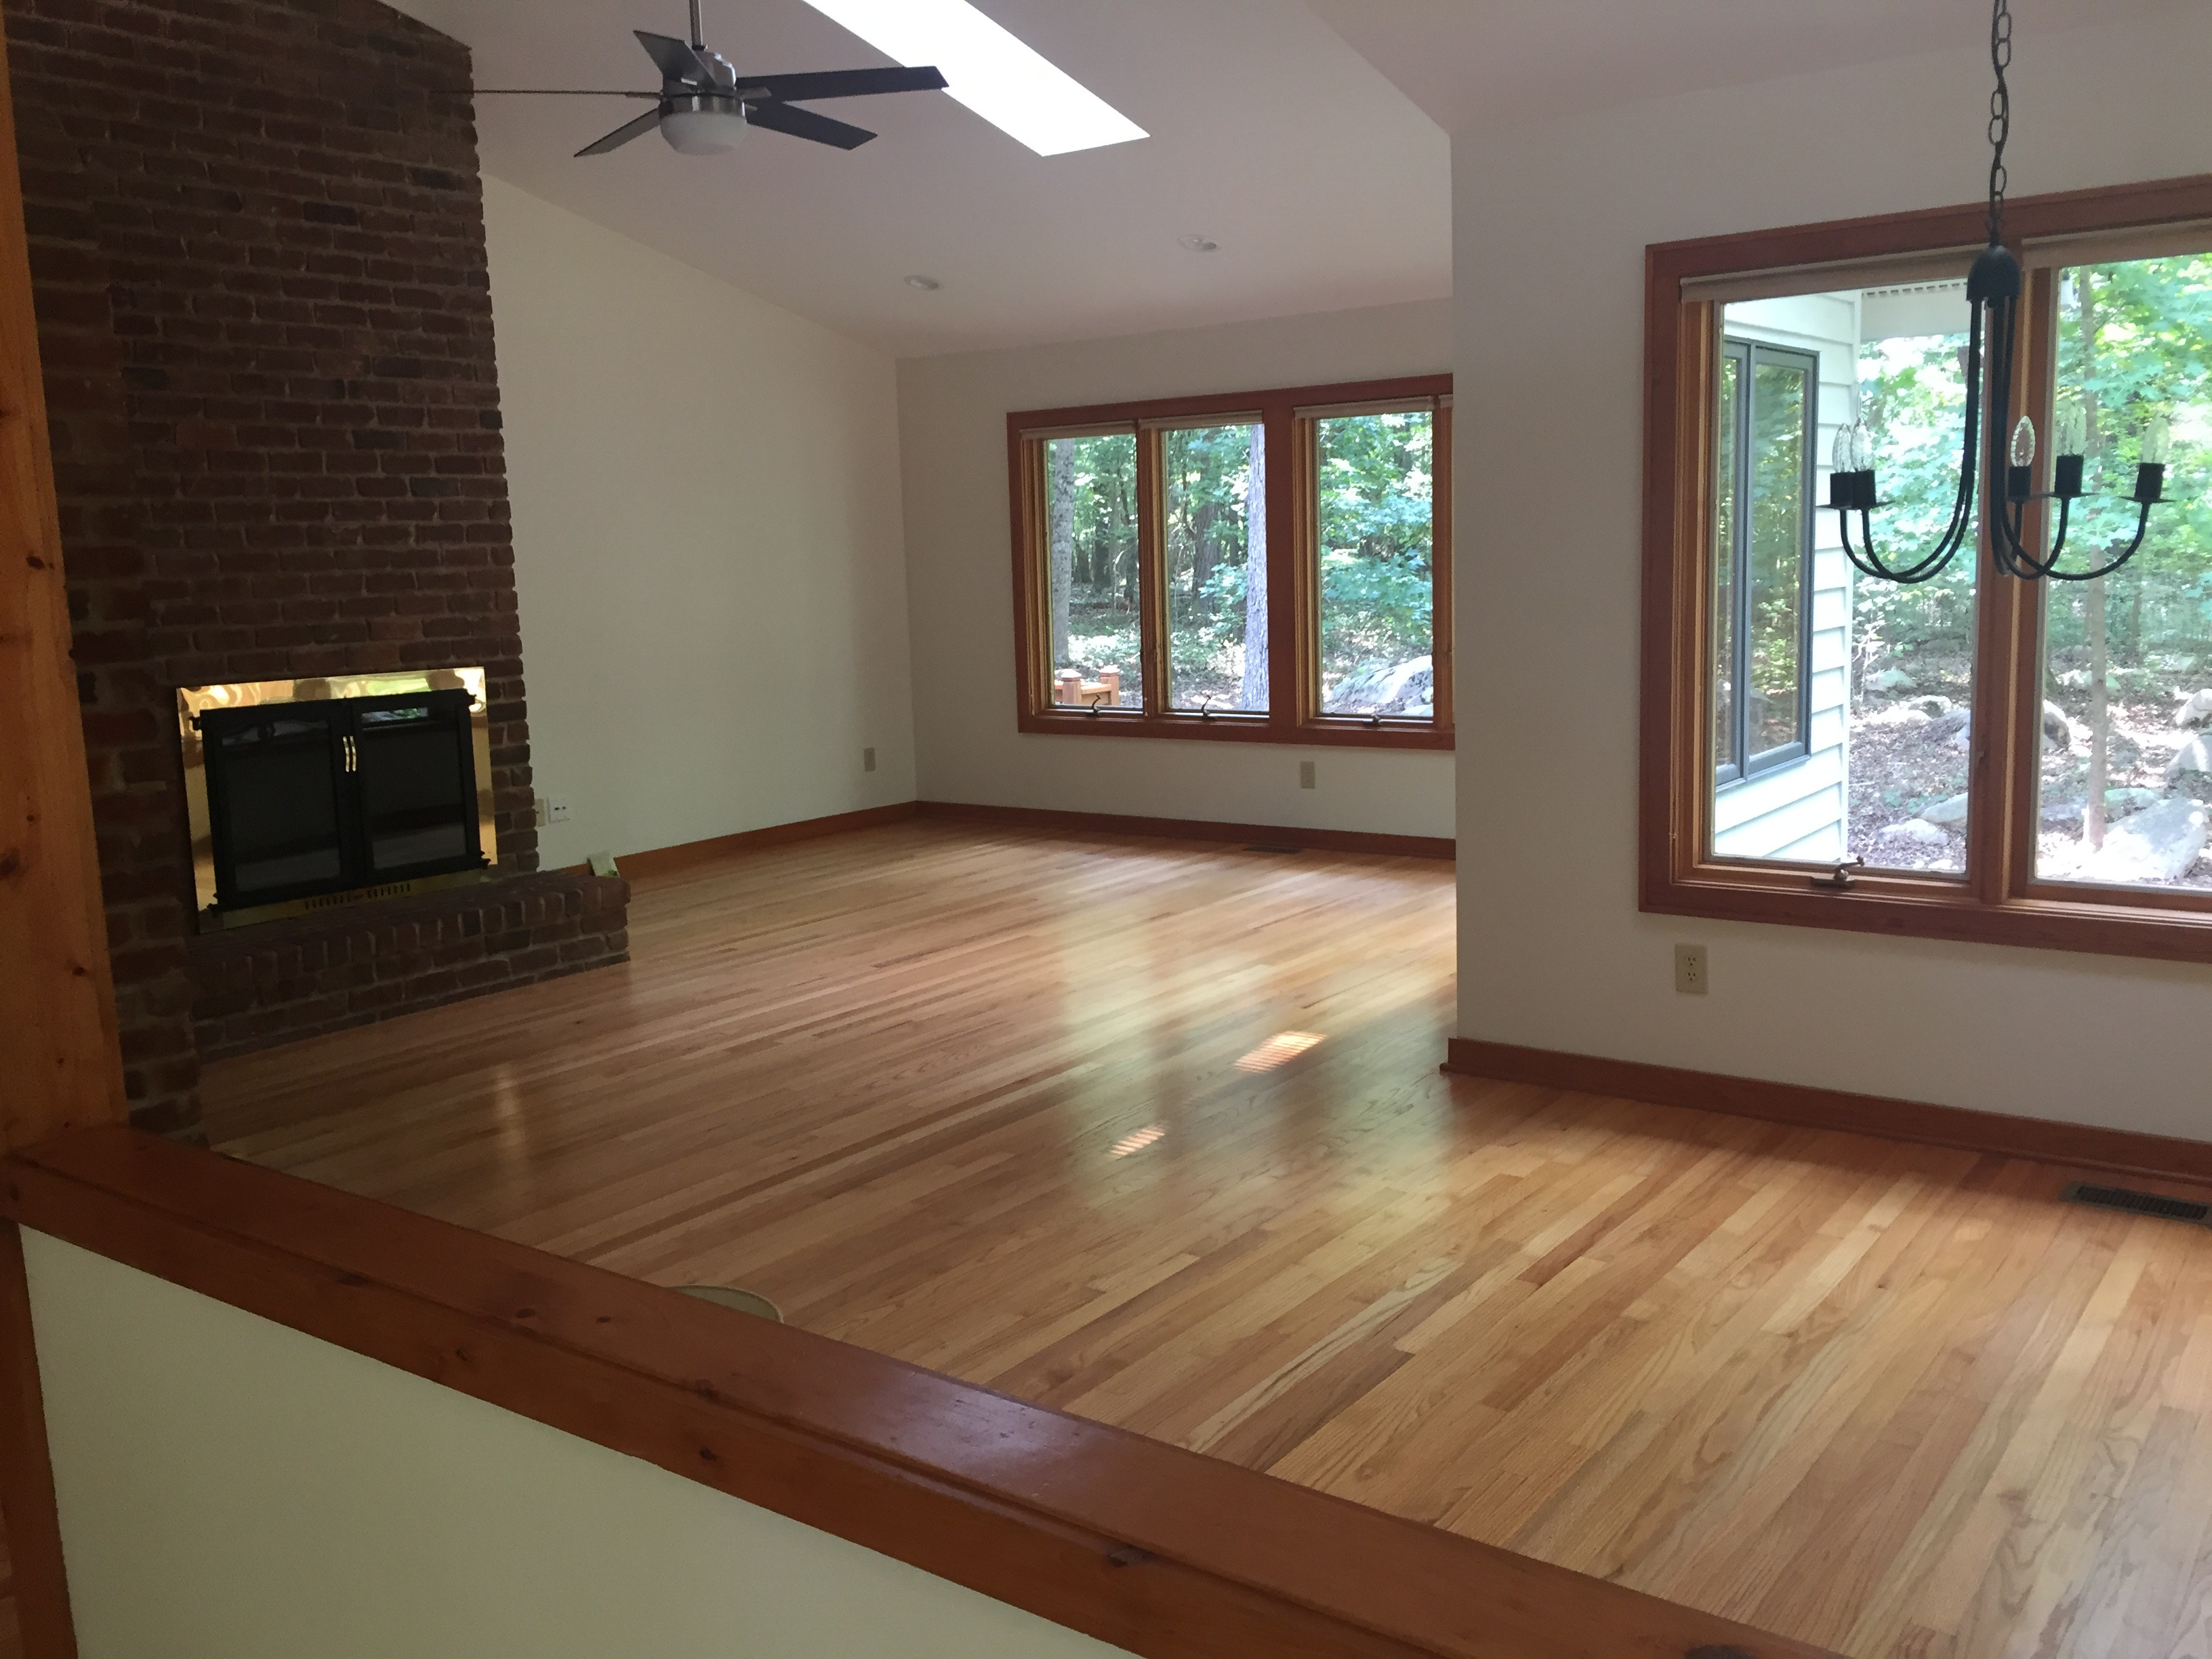 hardwood flooring fuquay varina nc of triangle house hunter top real estate agents for homes in raleigh within before staging photo